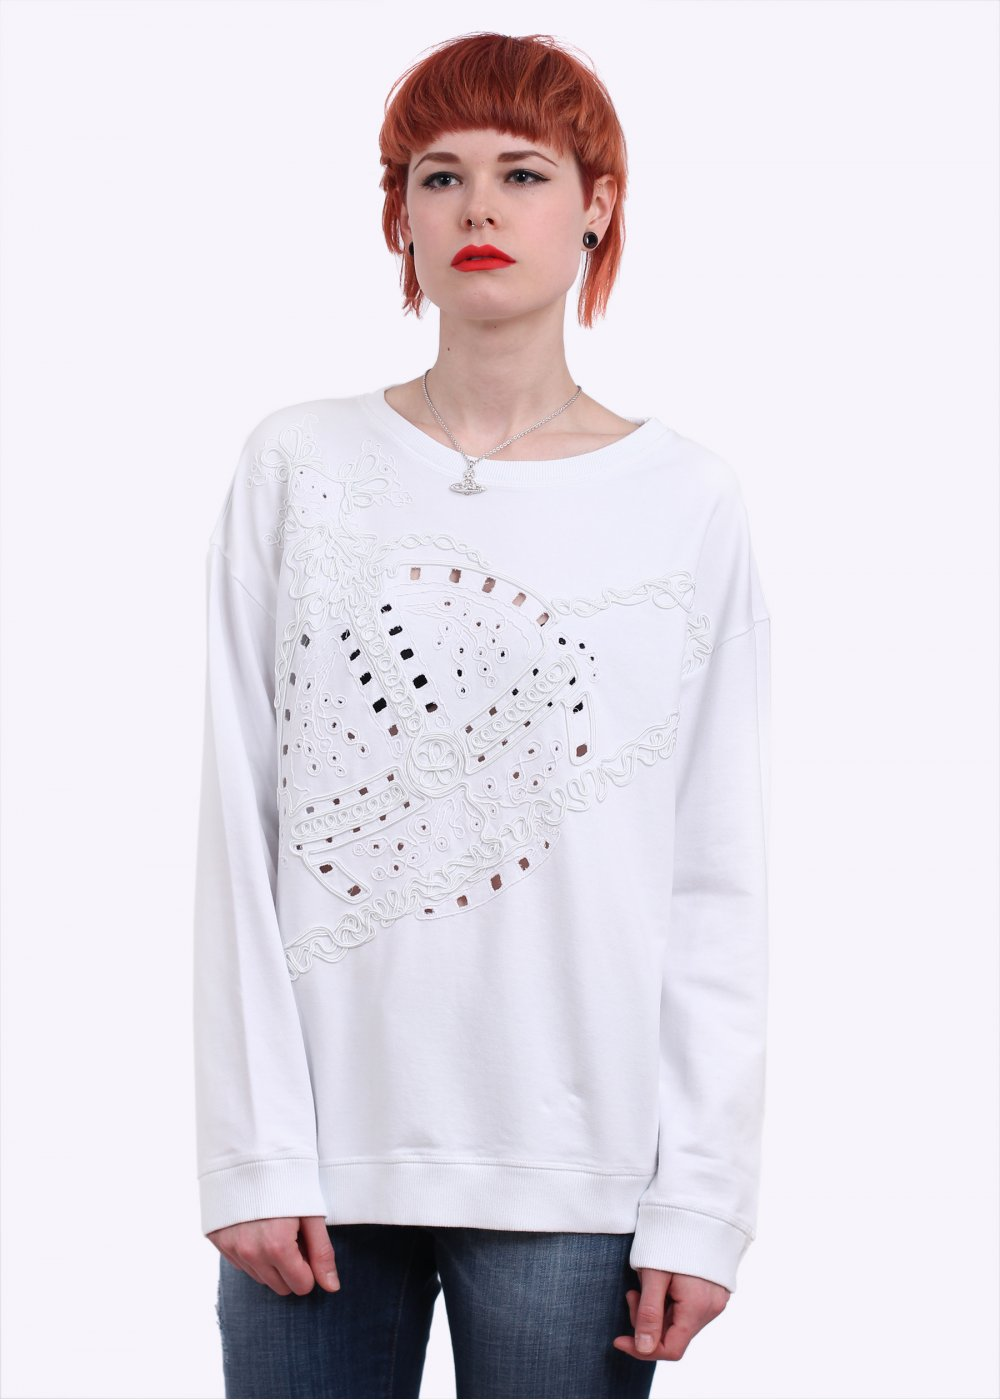 Vivienne Westwood Anglomania Jeans Orb Embroidery Sweater - White ...